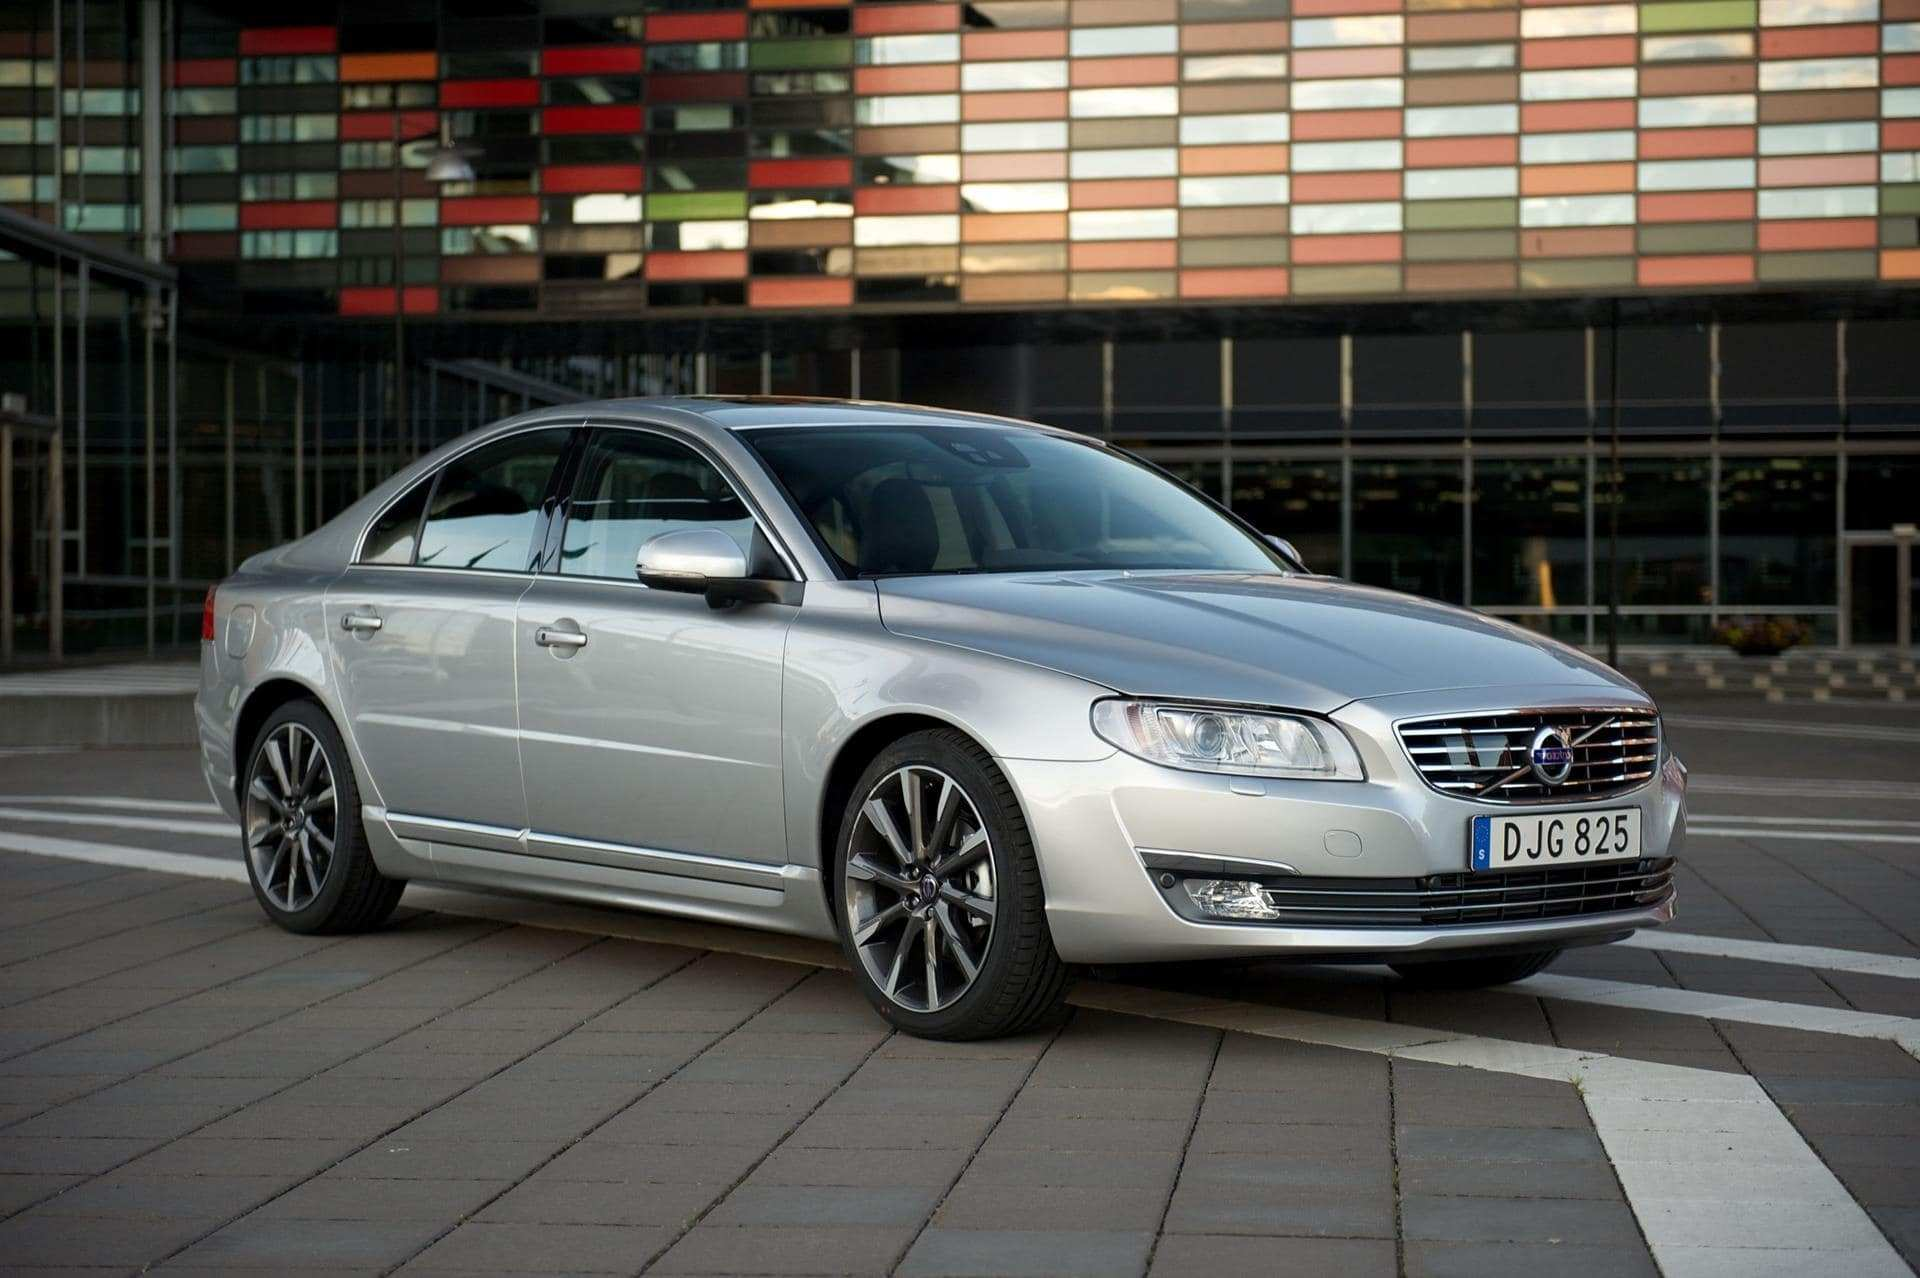 74 The Best 2019 Volvo S80 Overview